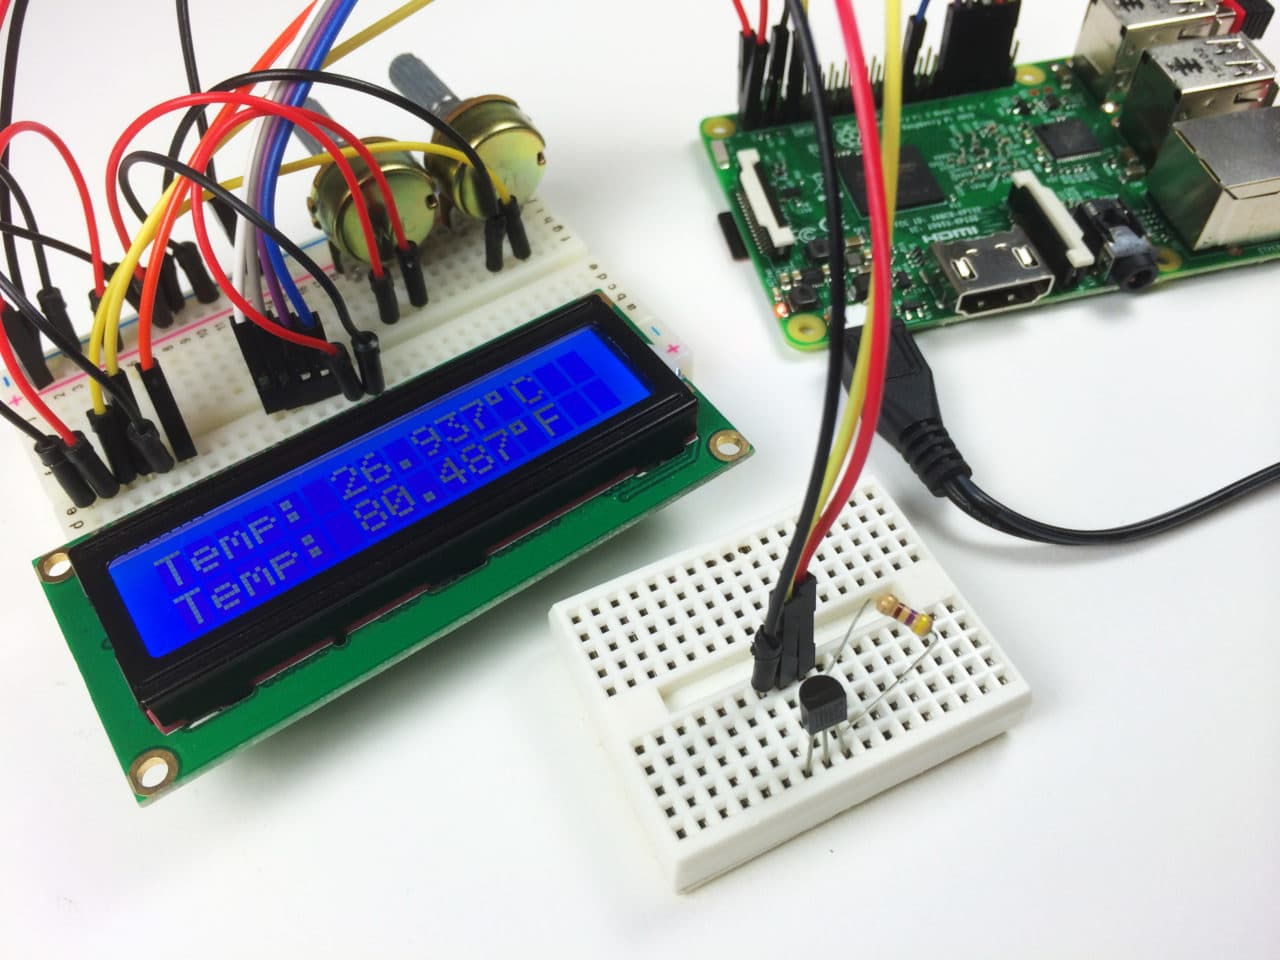 How To Set Up The Dht11 Humidity Sensor On Raspberry Pi Wiringpi Mcp3008 C Ds18b20 Temperature Tutorial